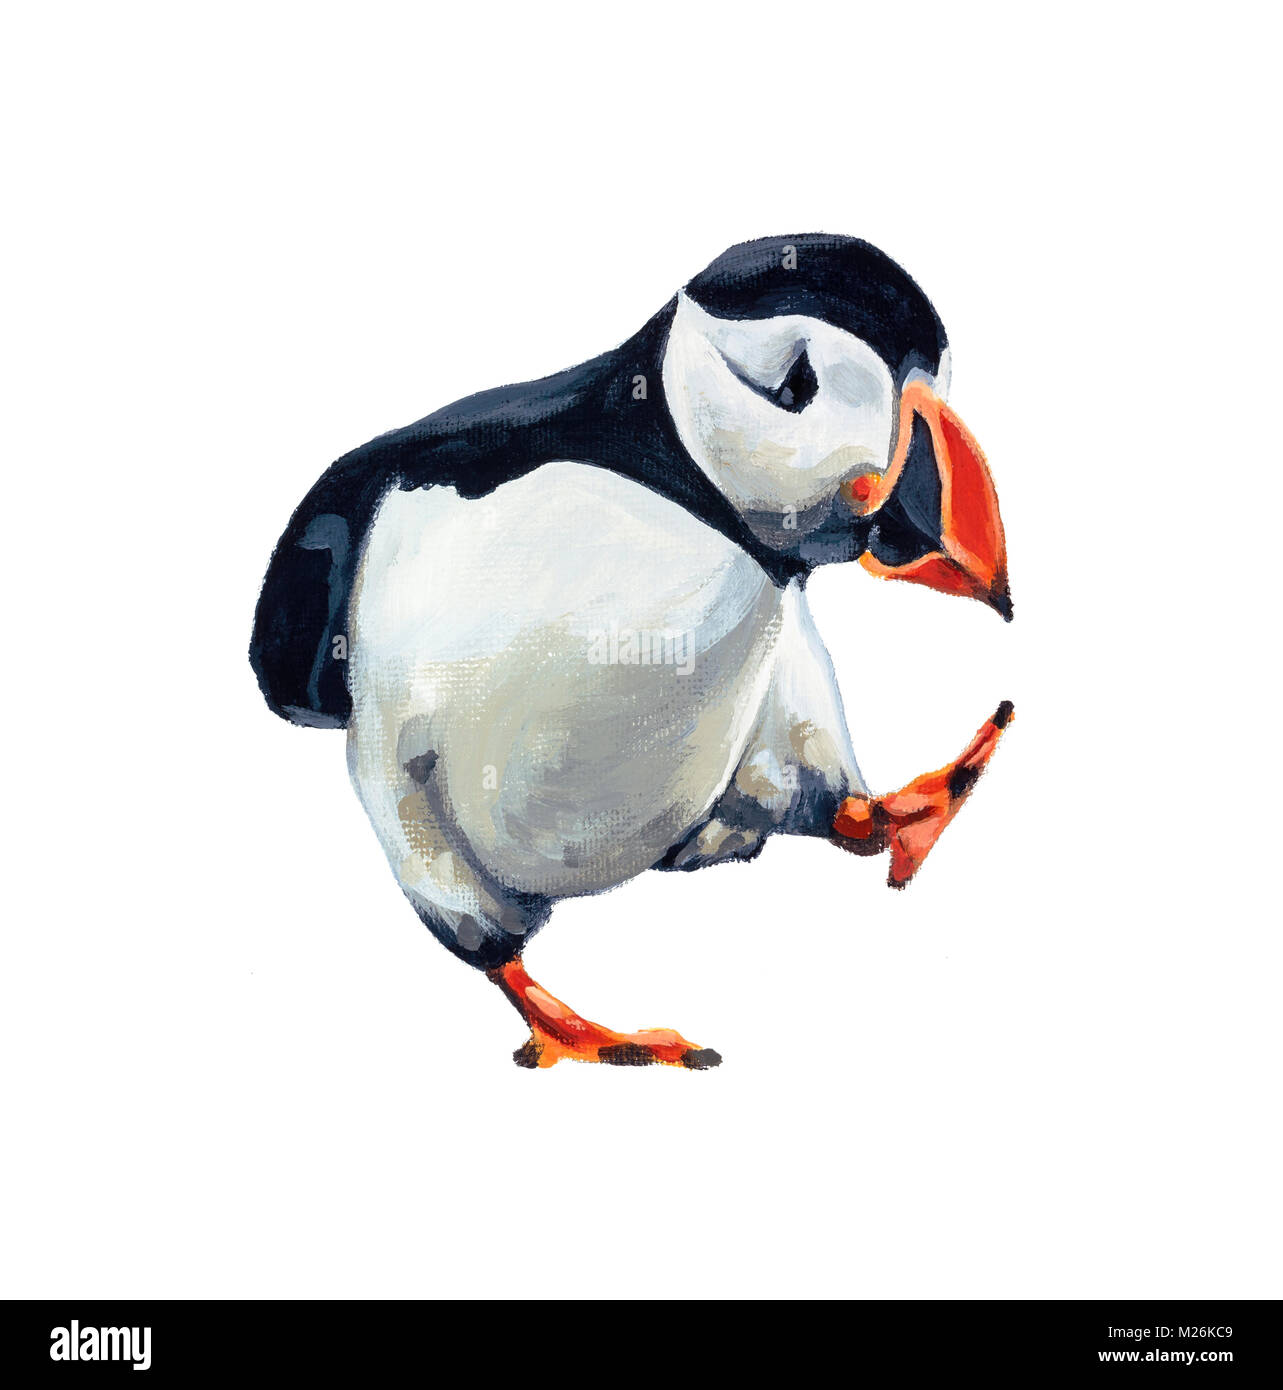 Painting of a single puffin - Stock Image